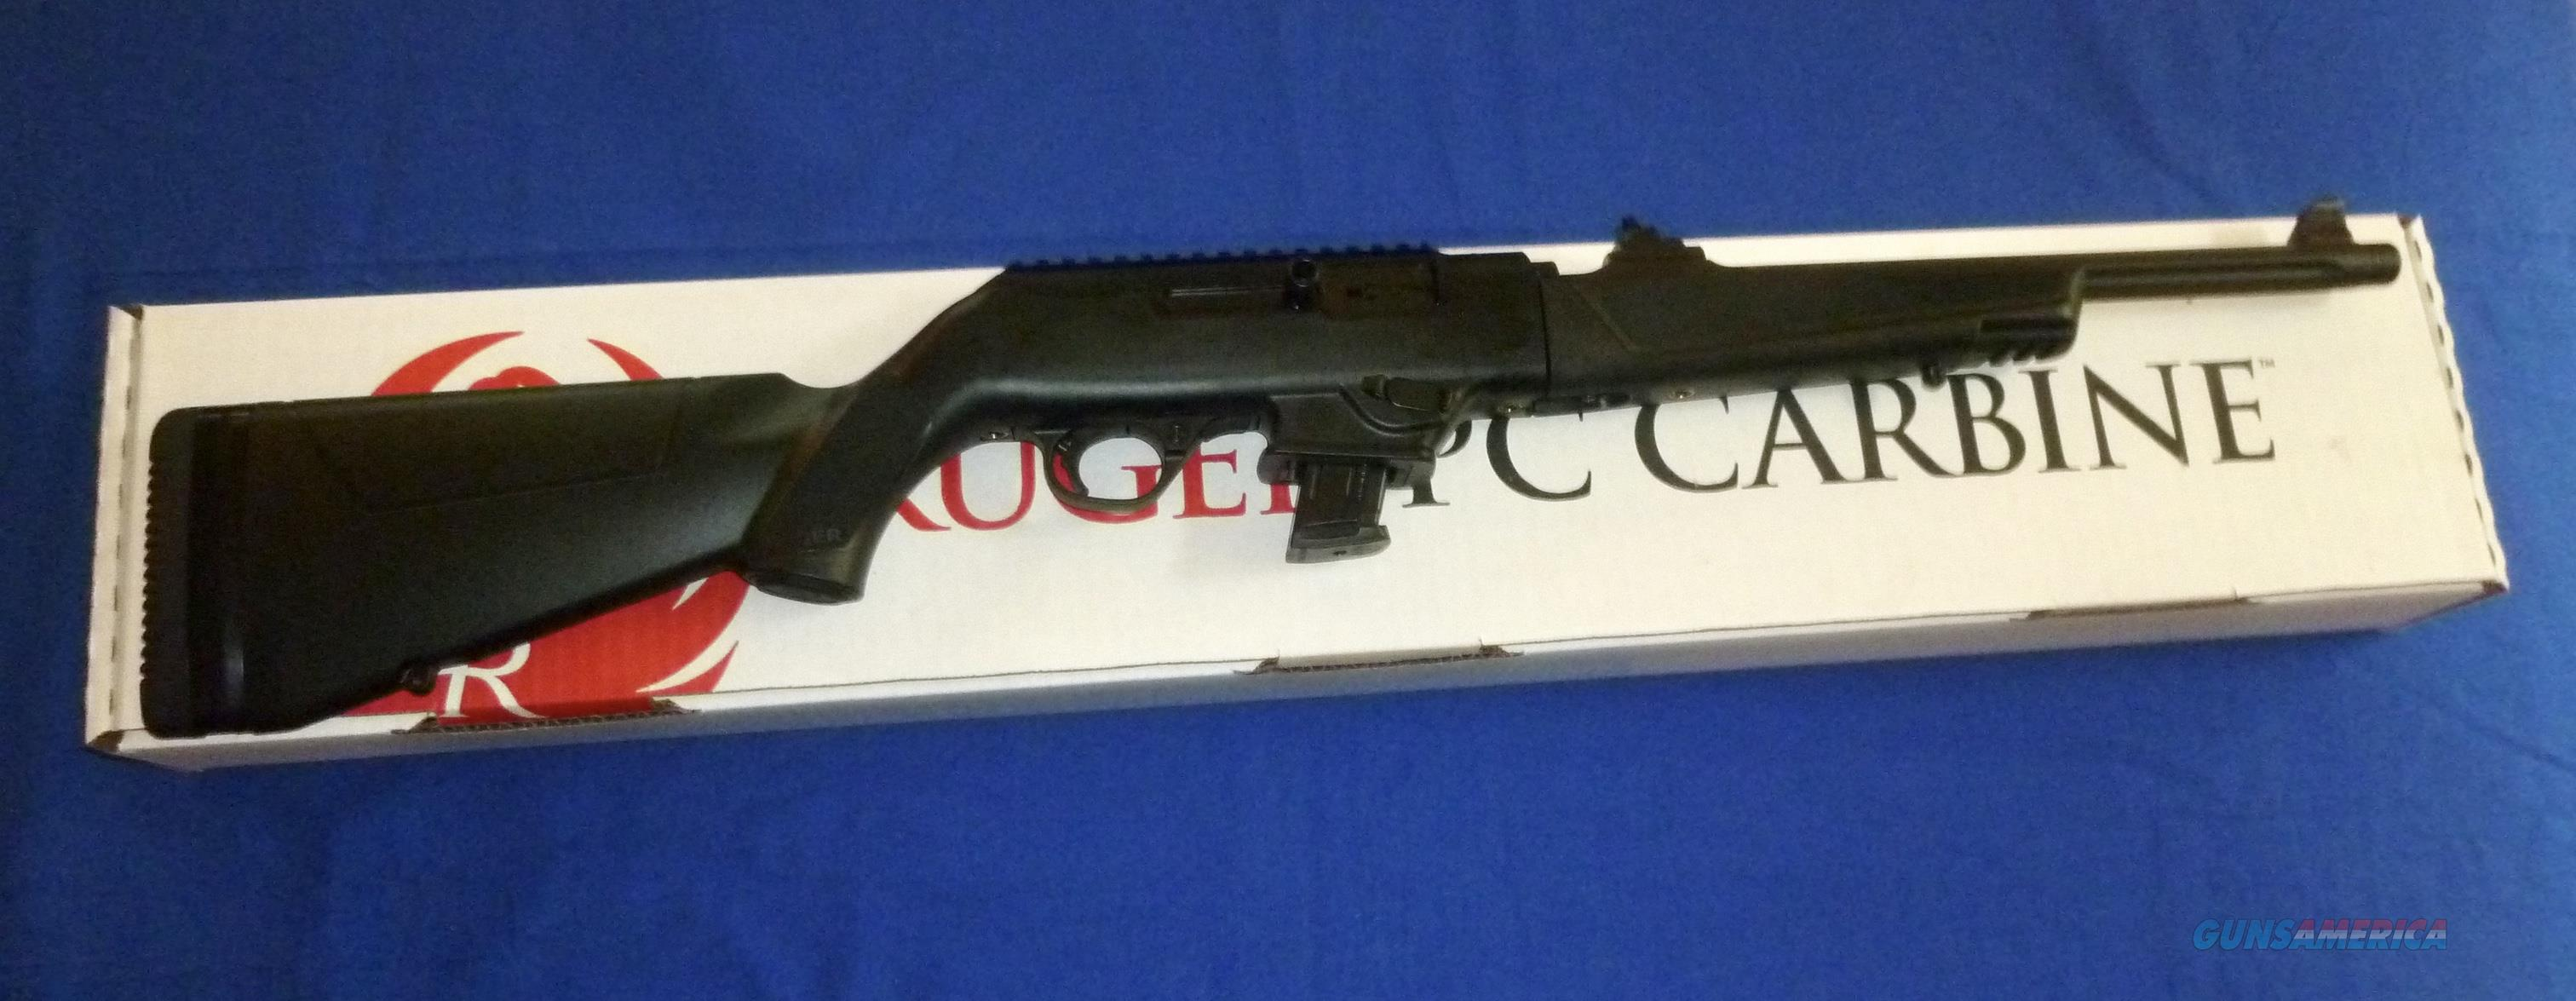 RUGER PC CARBINE 9MM SEMI-AUTO TAKEDOWN RIFLE  Guns > Rifles > Ruger Rifles > M44/Carbine